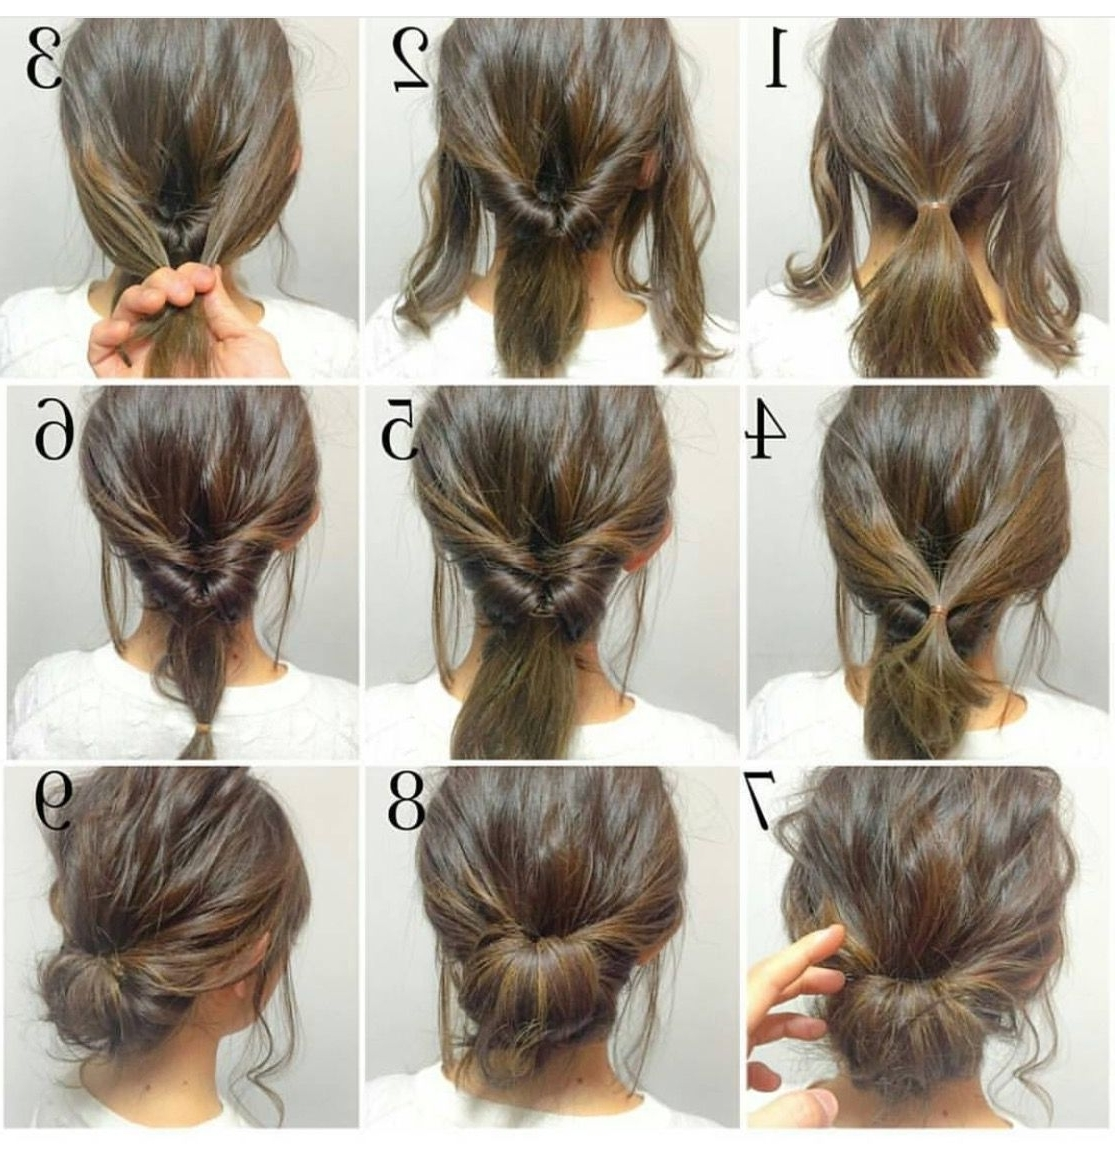 4 Messy Updos For Long Hair | Hairz | Pinterest | Updos, Hair Style Regarding Quick Messy Bun Updo Hairstyles (View 10 of 15)